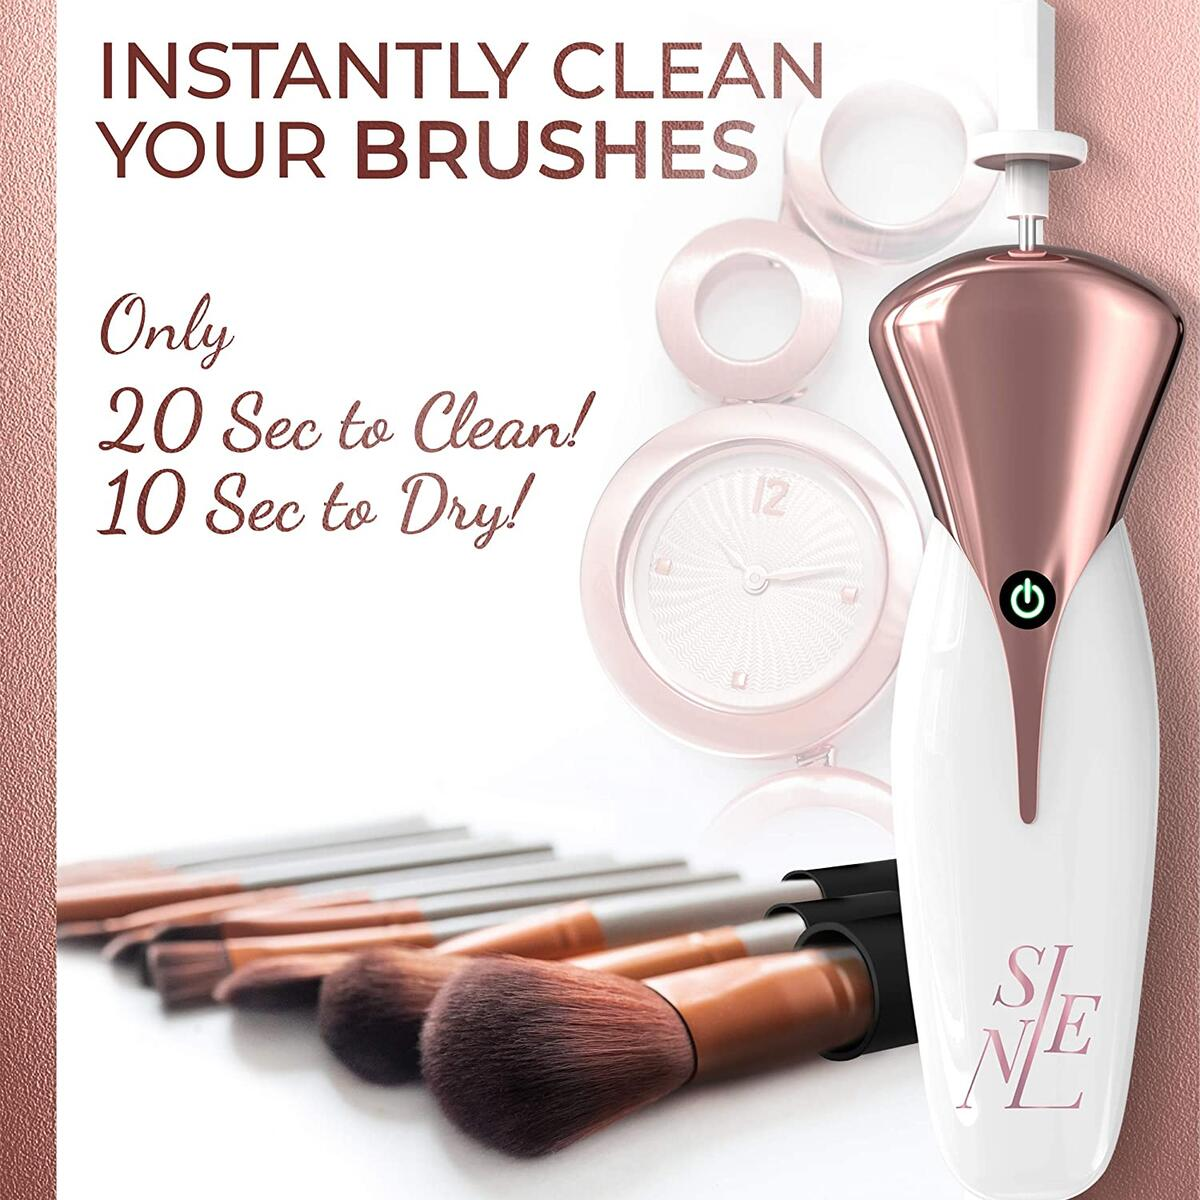 Makeup Brush Cleaner & Dryer Machine | Automatic Spinner to Wash & Dry Brushes in Seconds | 13 Collars to Fit Any Makeup Brush – Save Money & Increase the Longevity of Your Brushes